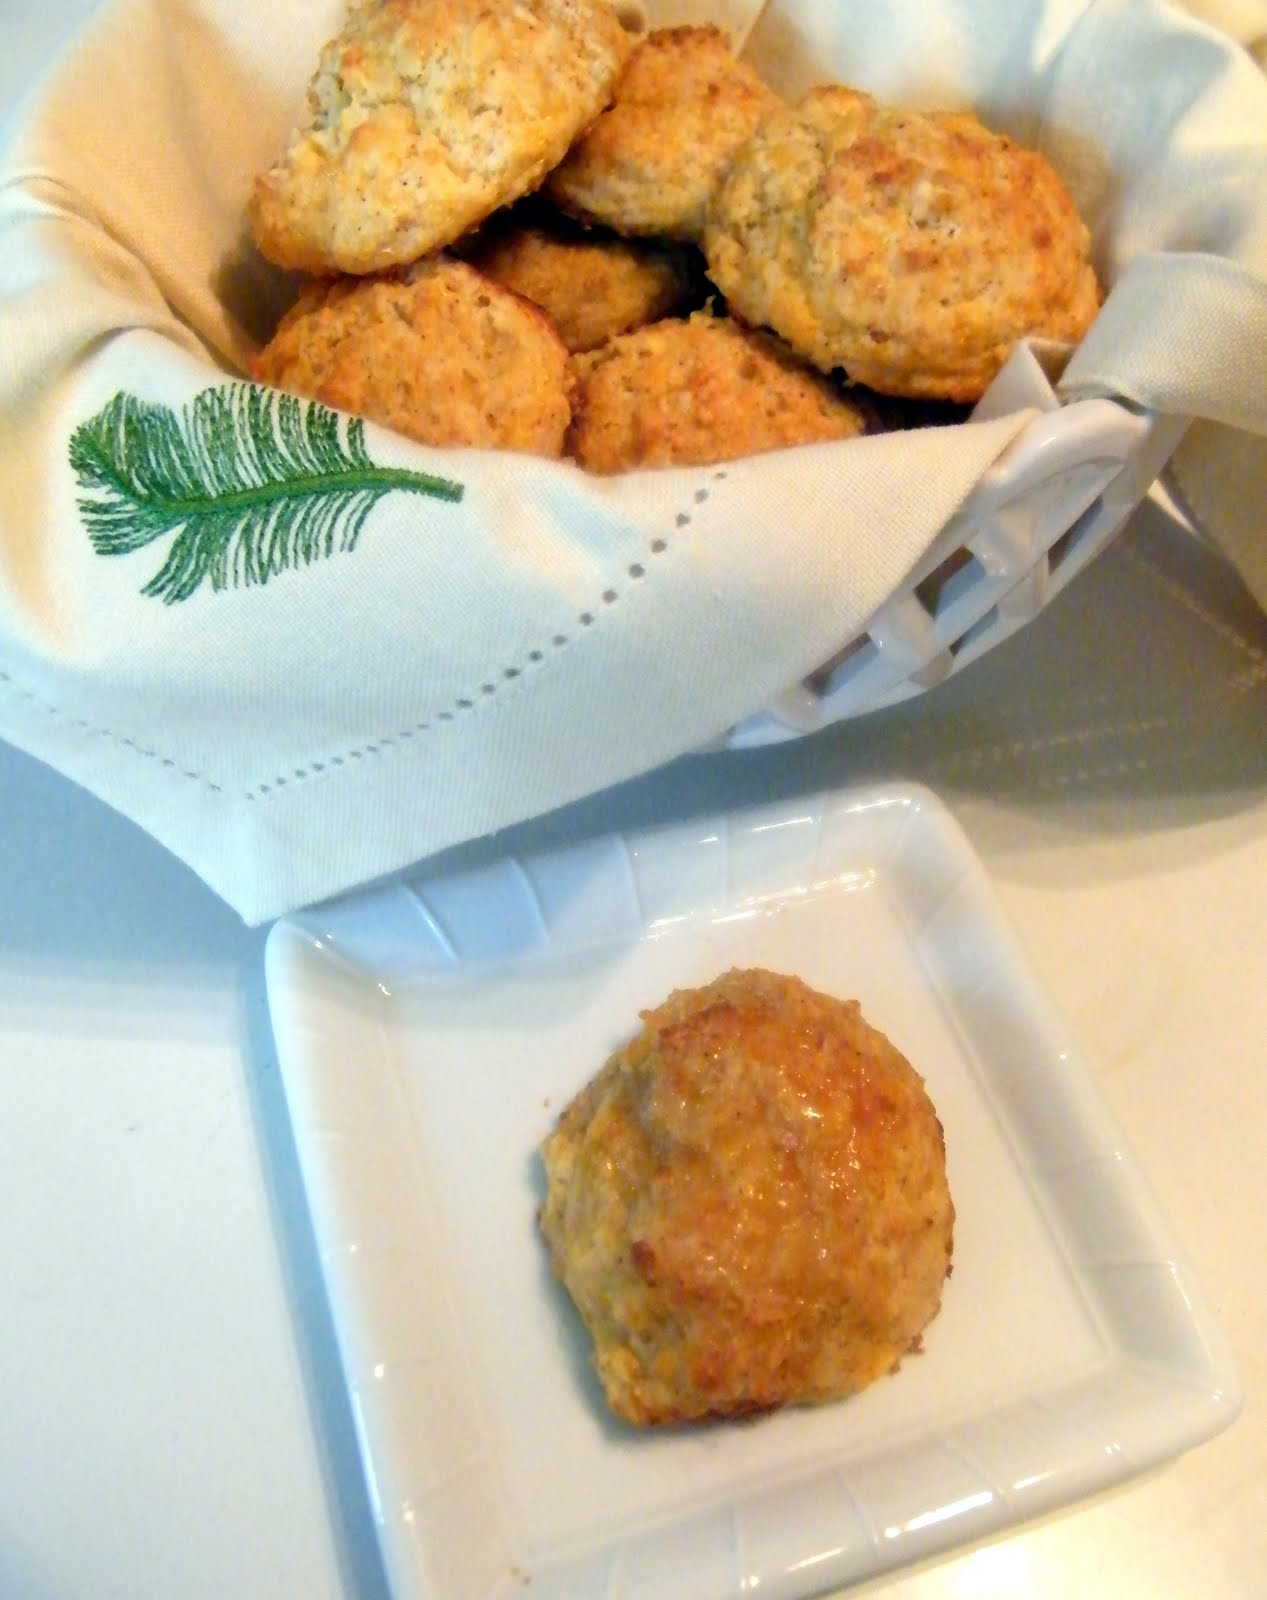 Candy Girl: Chipotle Cheddar Biscuits